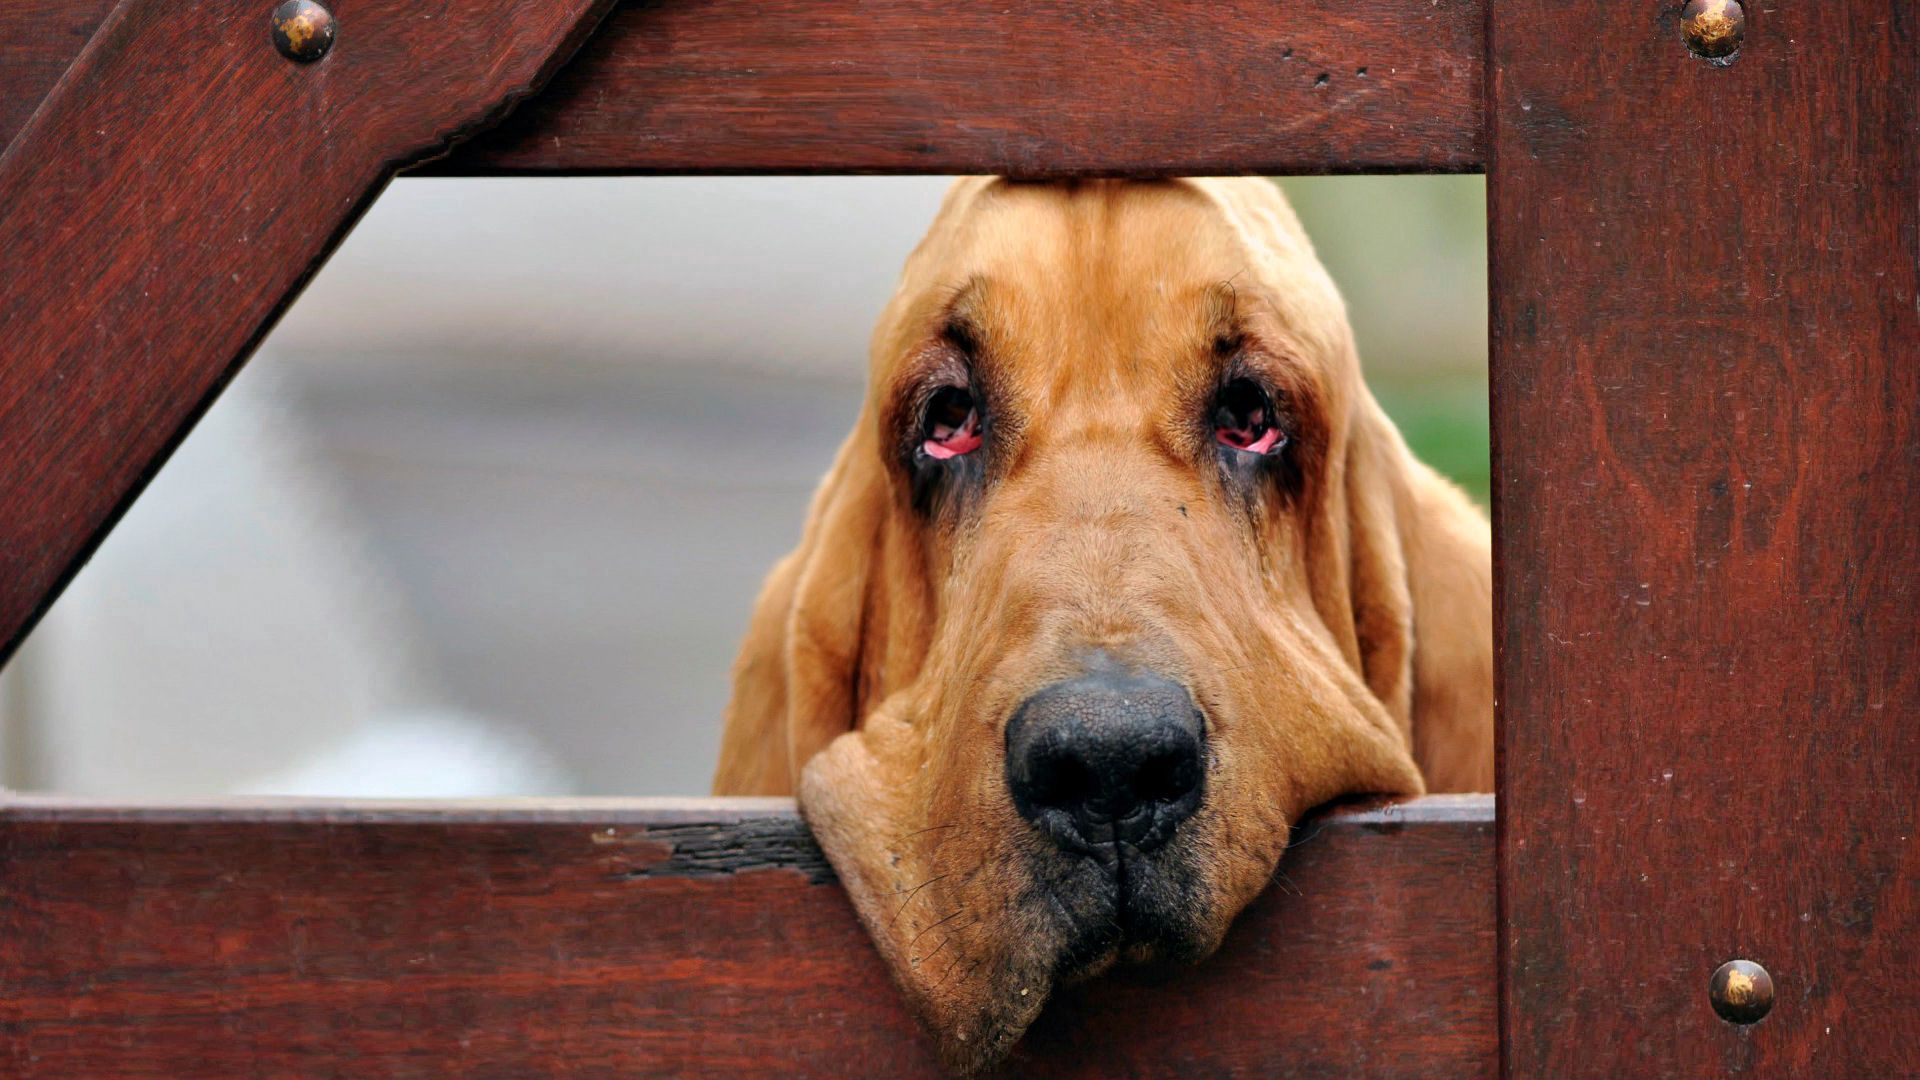 141697 download wallpaper Animals, Dog, Muzzle, Fence, Wood, Wooden screensavers and pictures for free